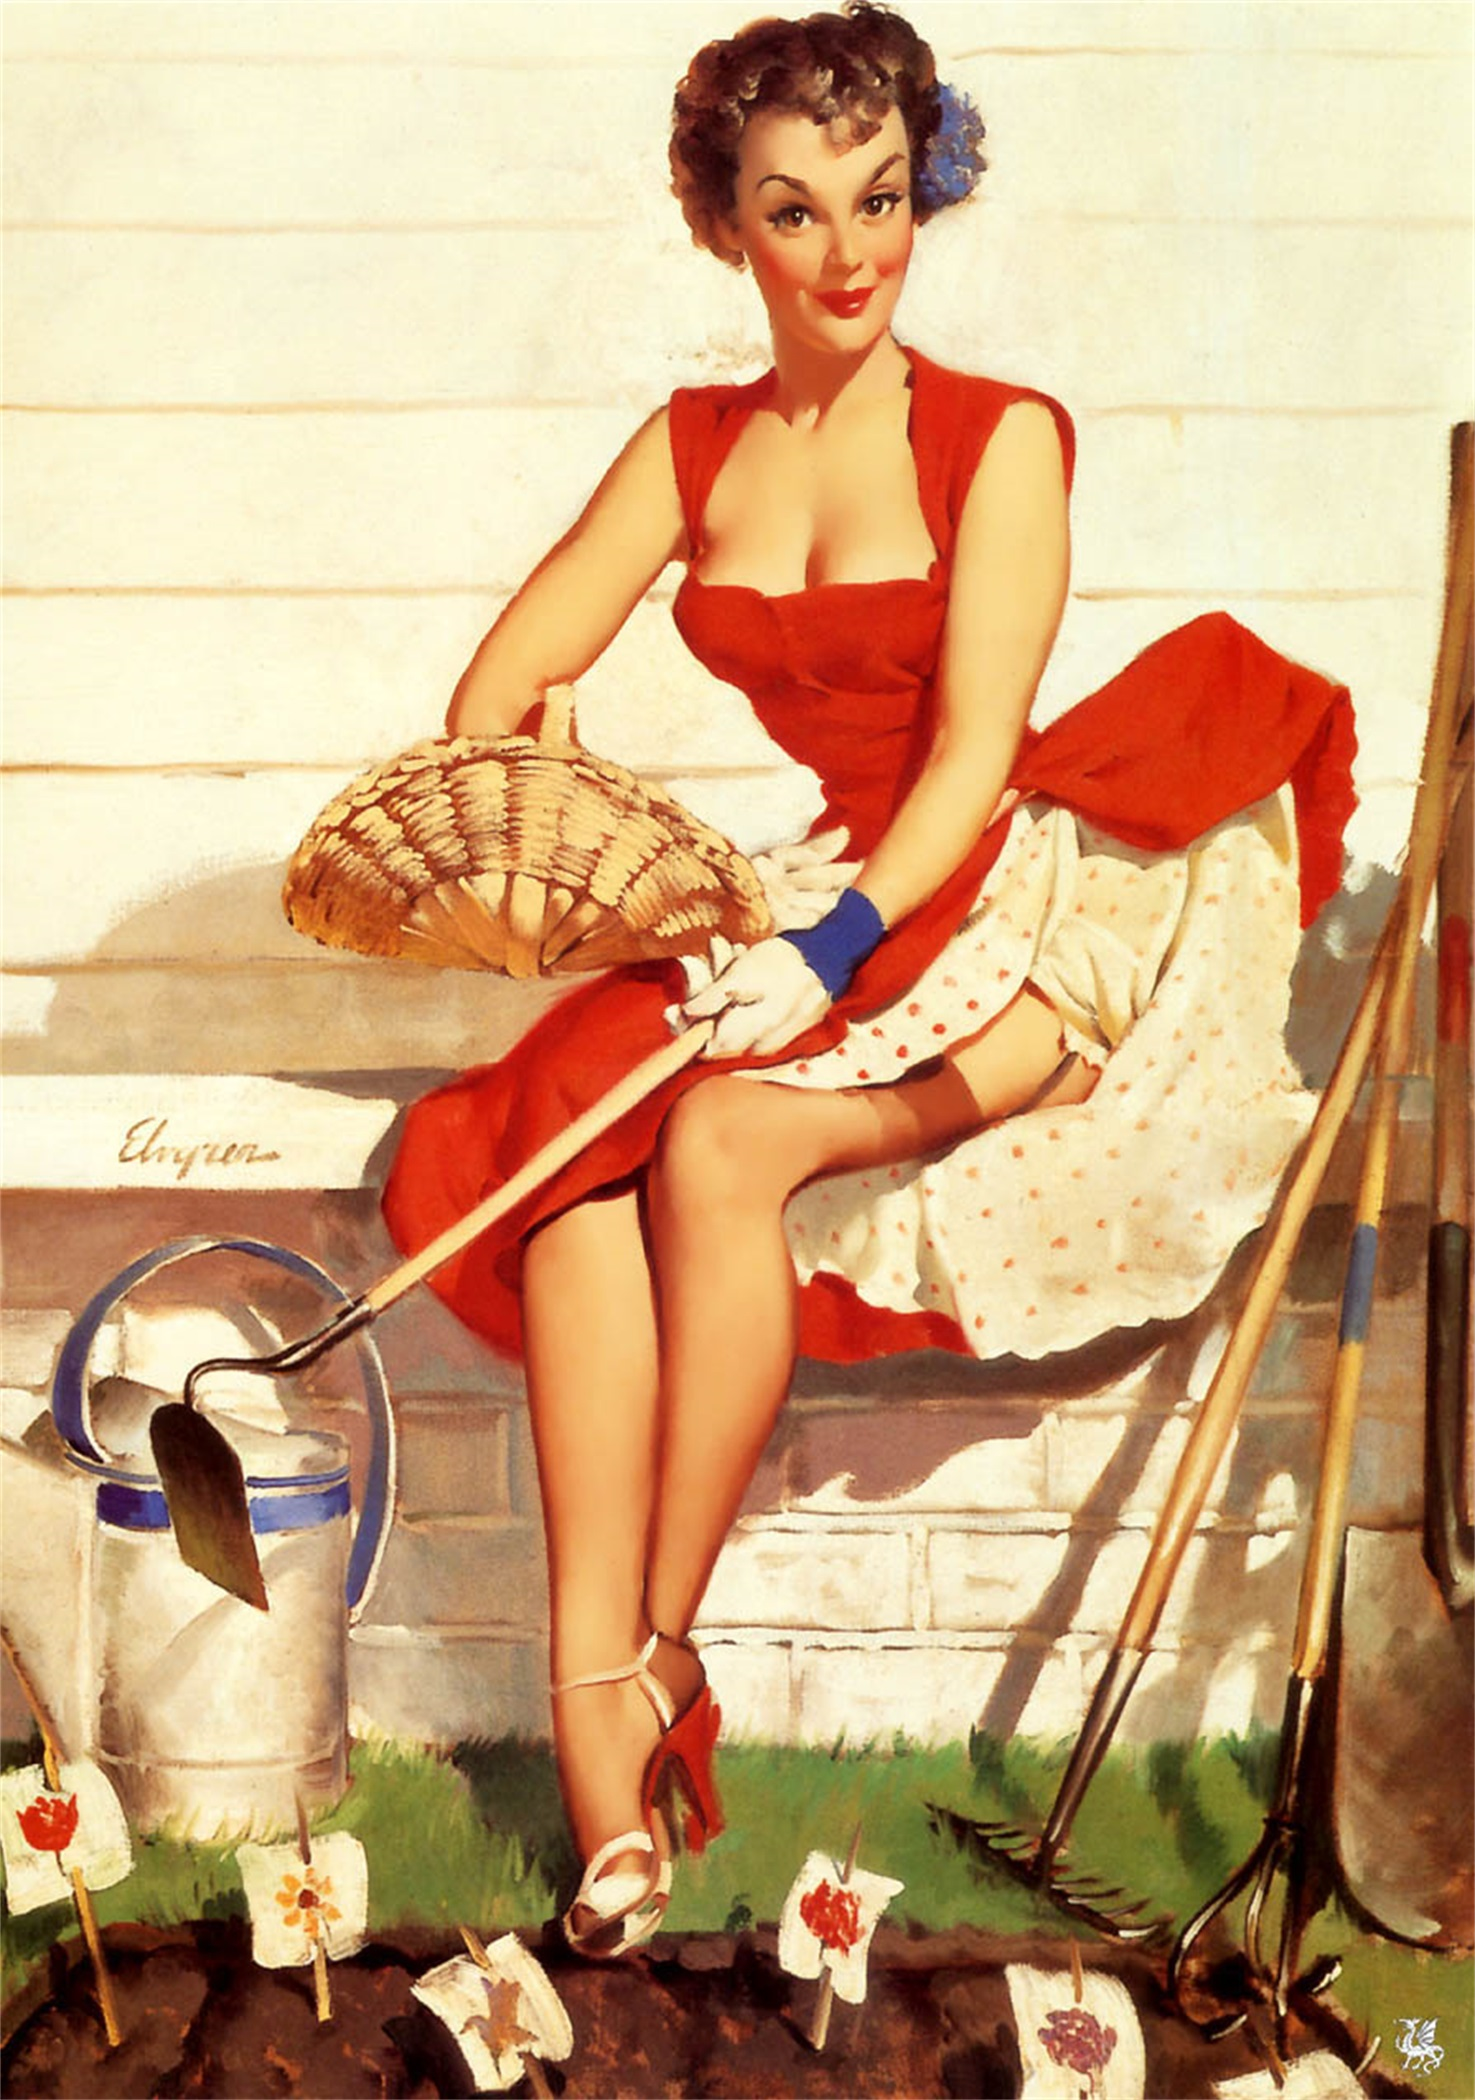 Paintings and pictures of Pinup girls have inspired and entertained generations of men on calendars and all kinds of covers in magazines and on playing cards